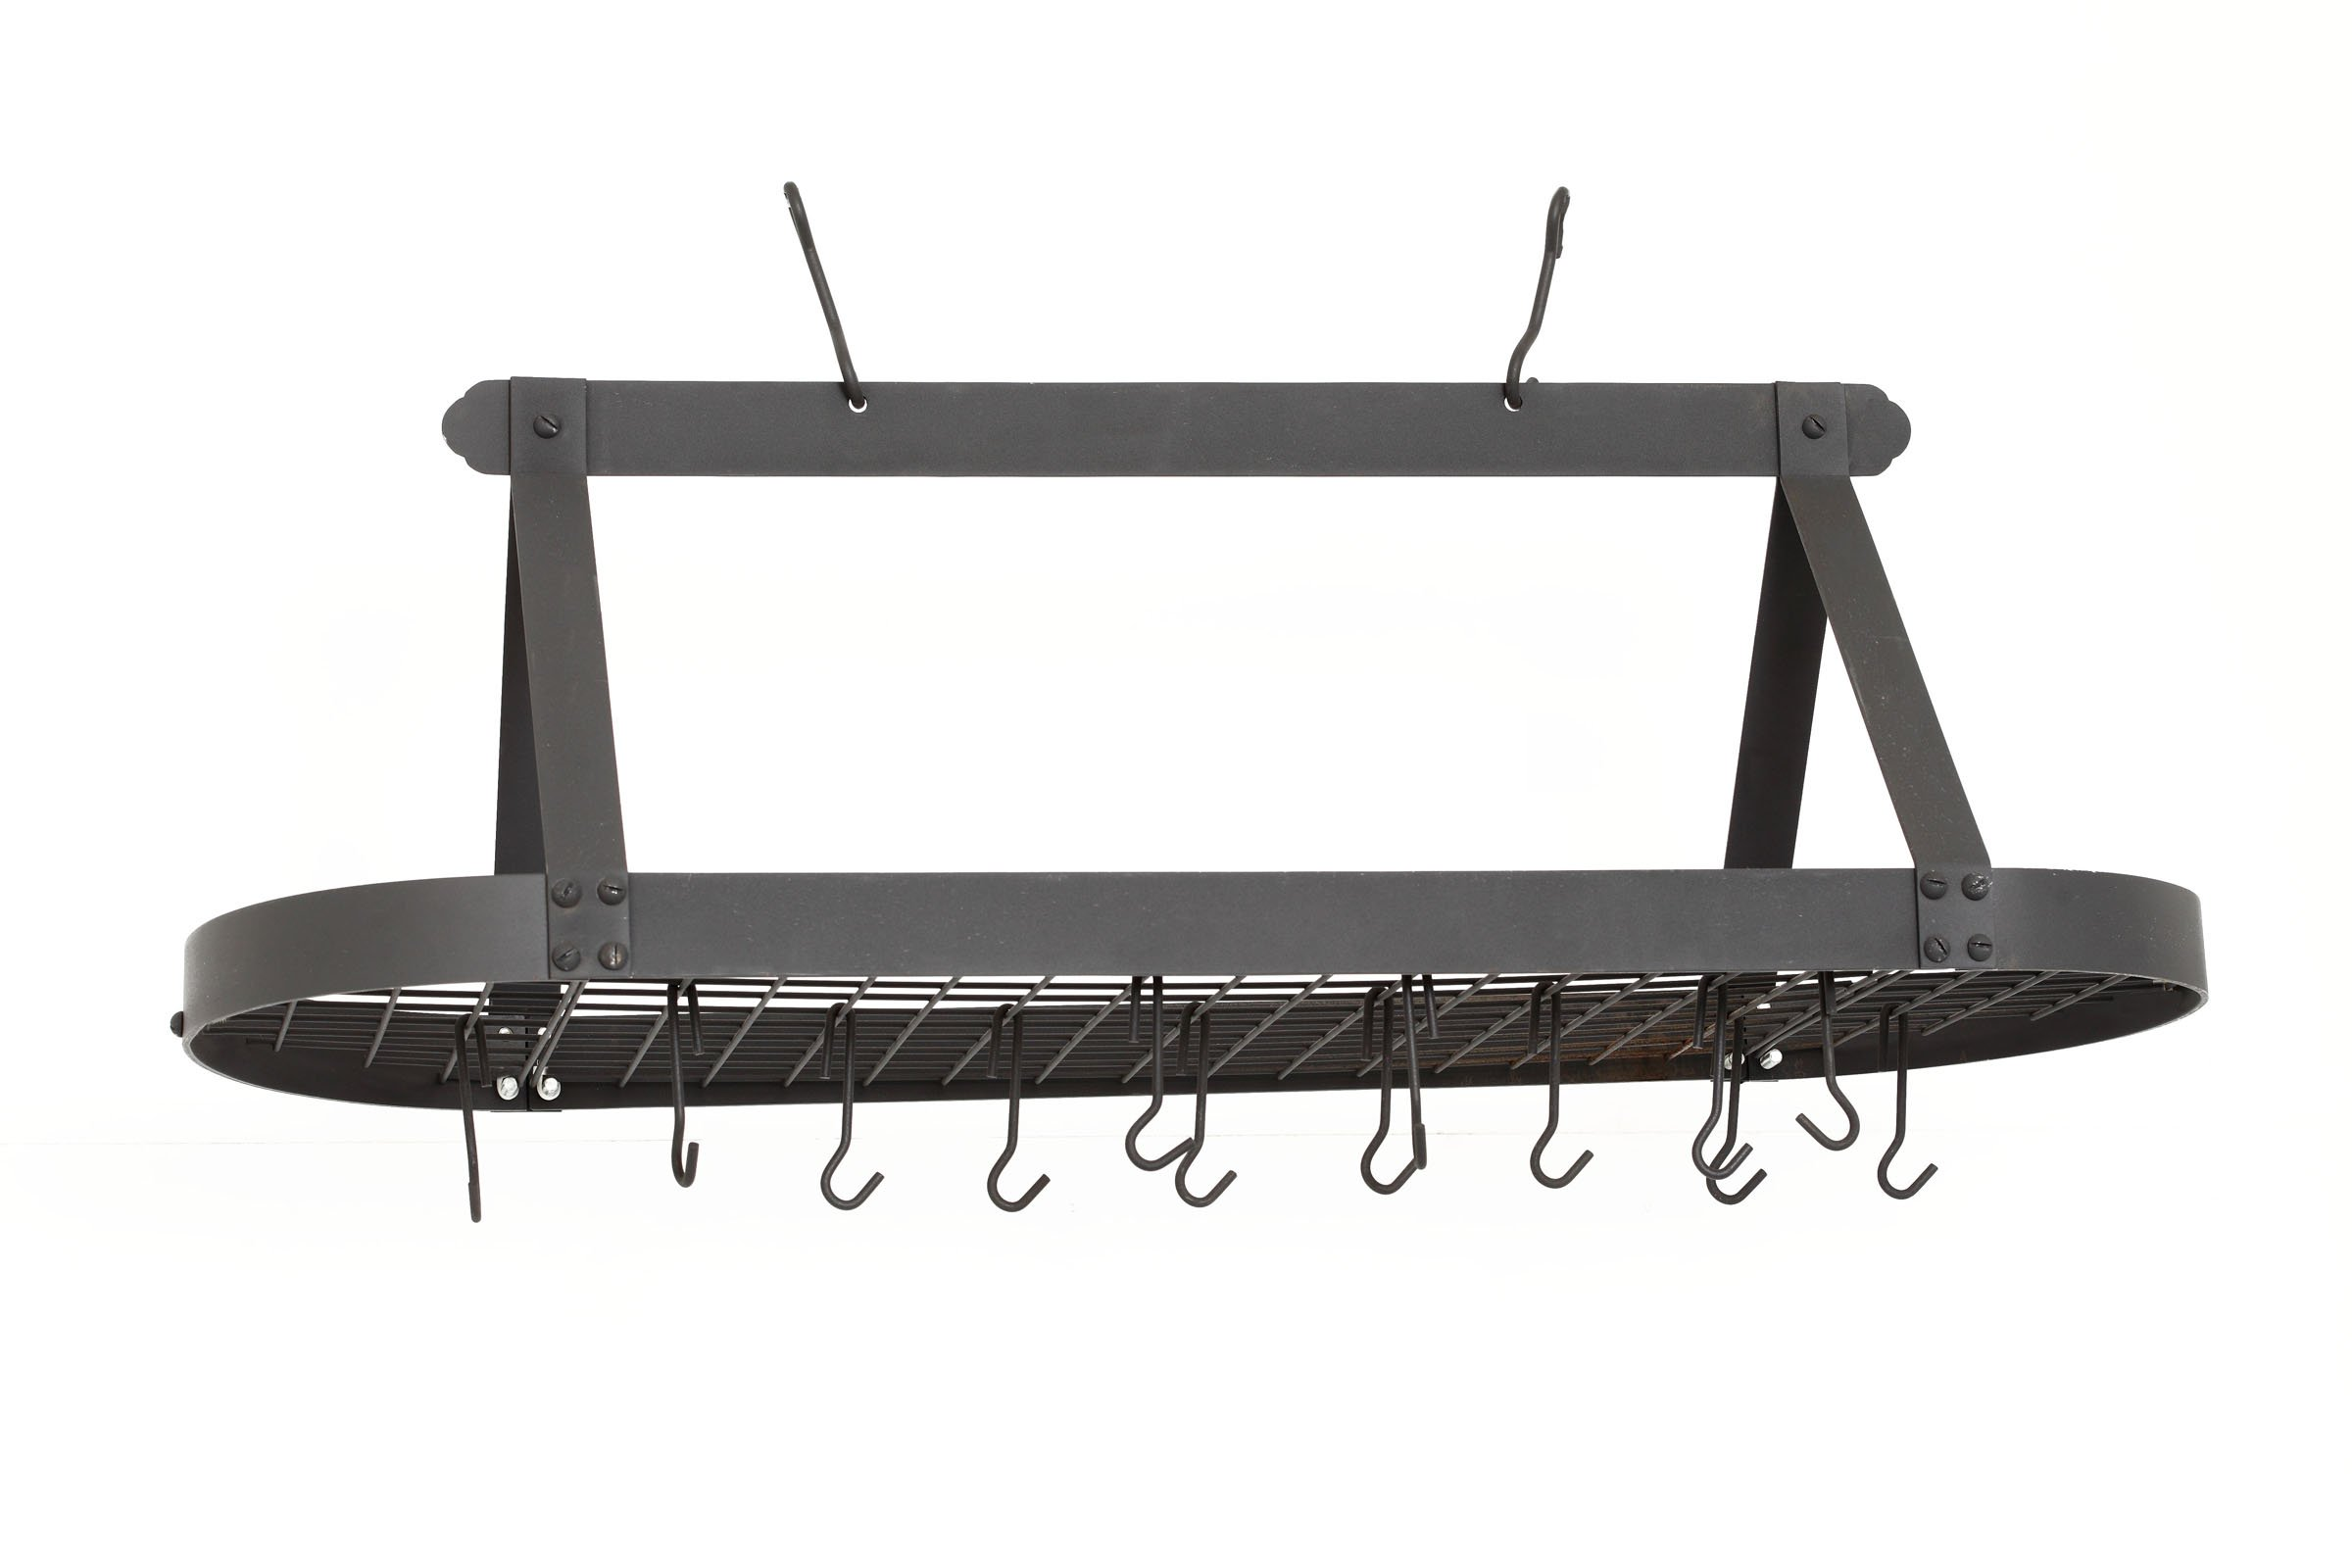 Old Dutch Oval Hanging Pot Rack with Grid & 24 Hooks, Graphite, 48 x 19 x 15.5 by Old Dutch